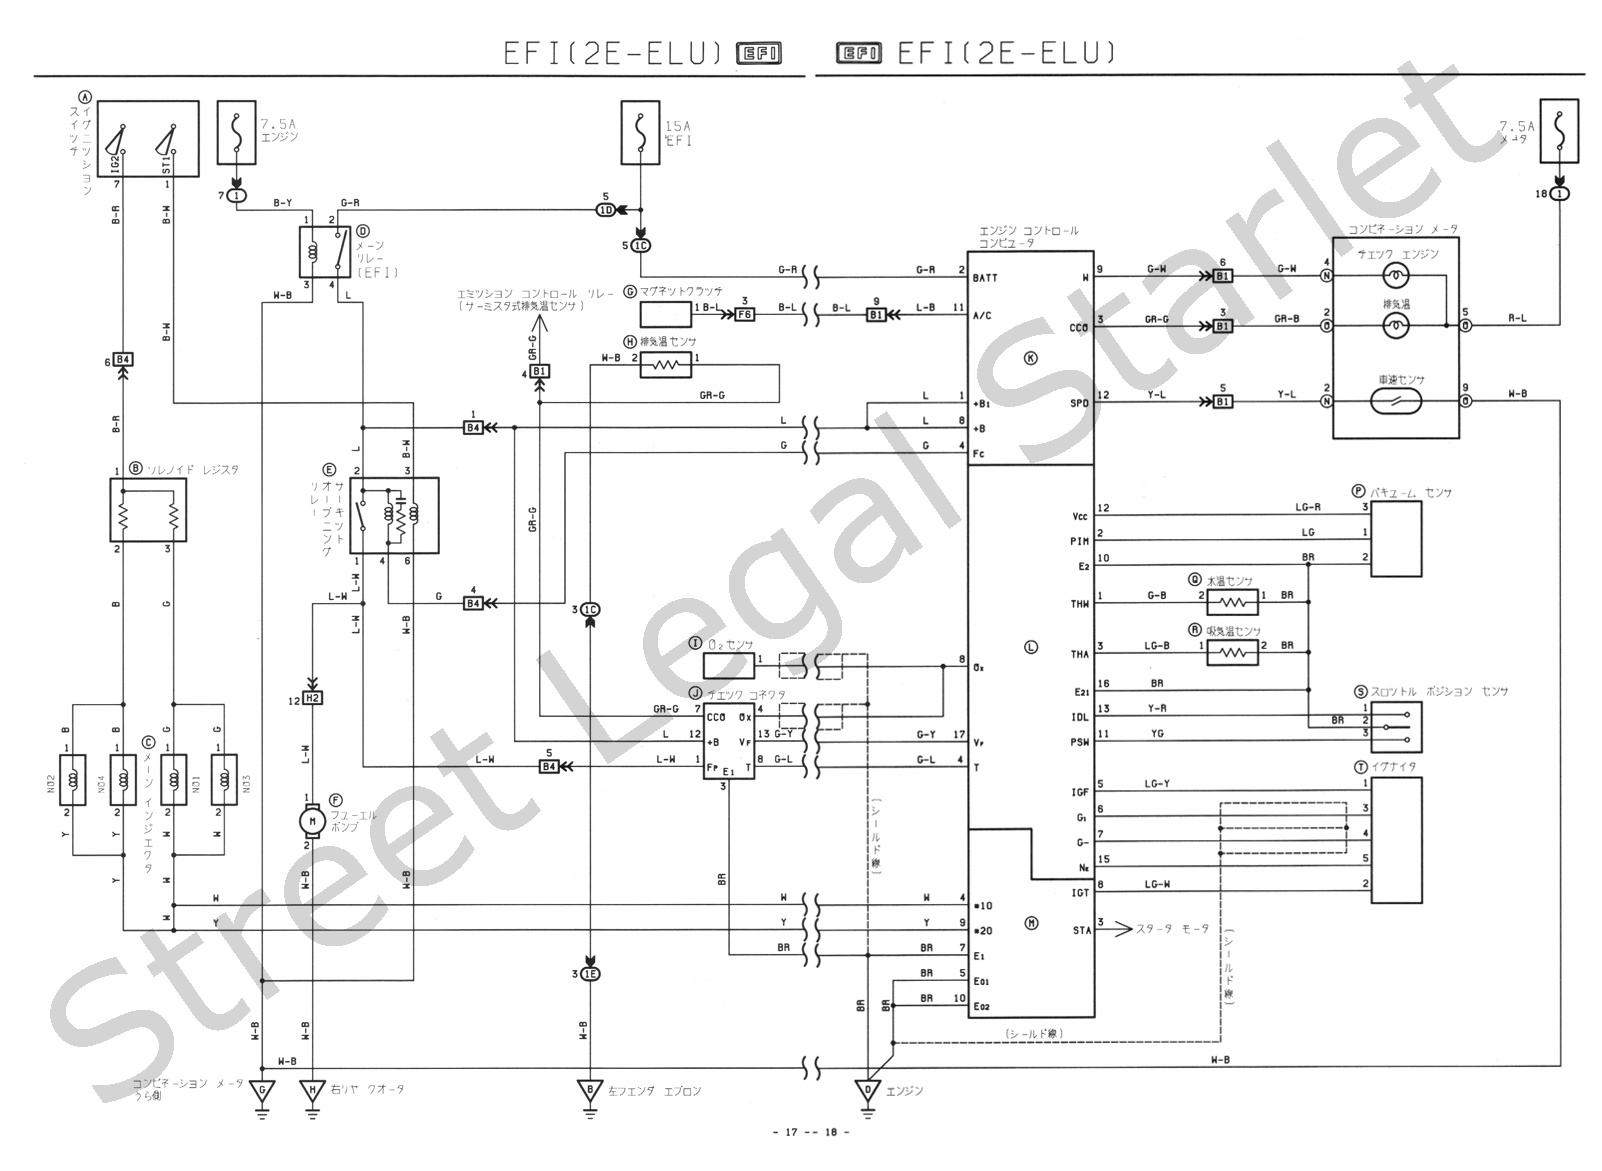 Toyota Hiace Towbar Wiring Diagram 34 Images 1991 Camry Sls Ep71 2e Elu Glanza Diagrams Instruction